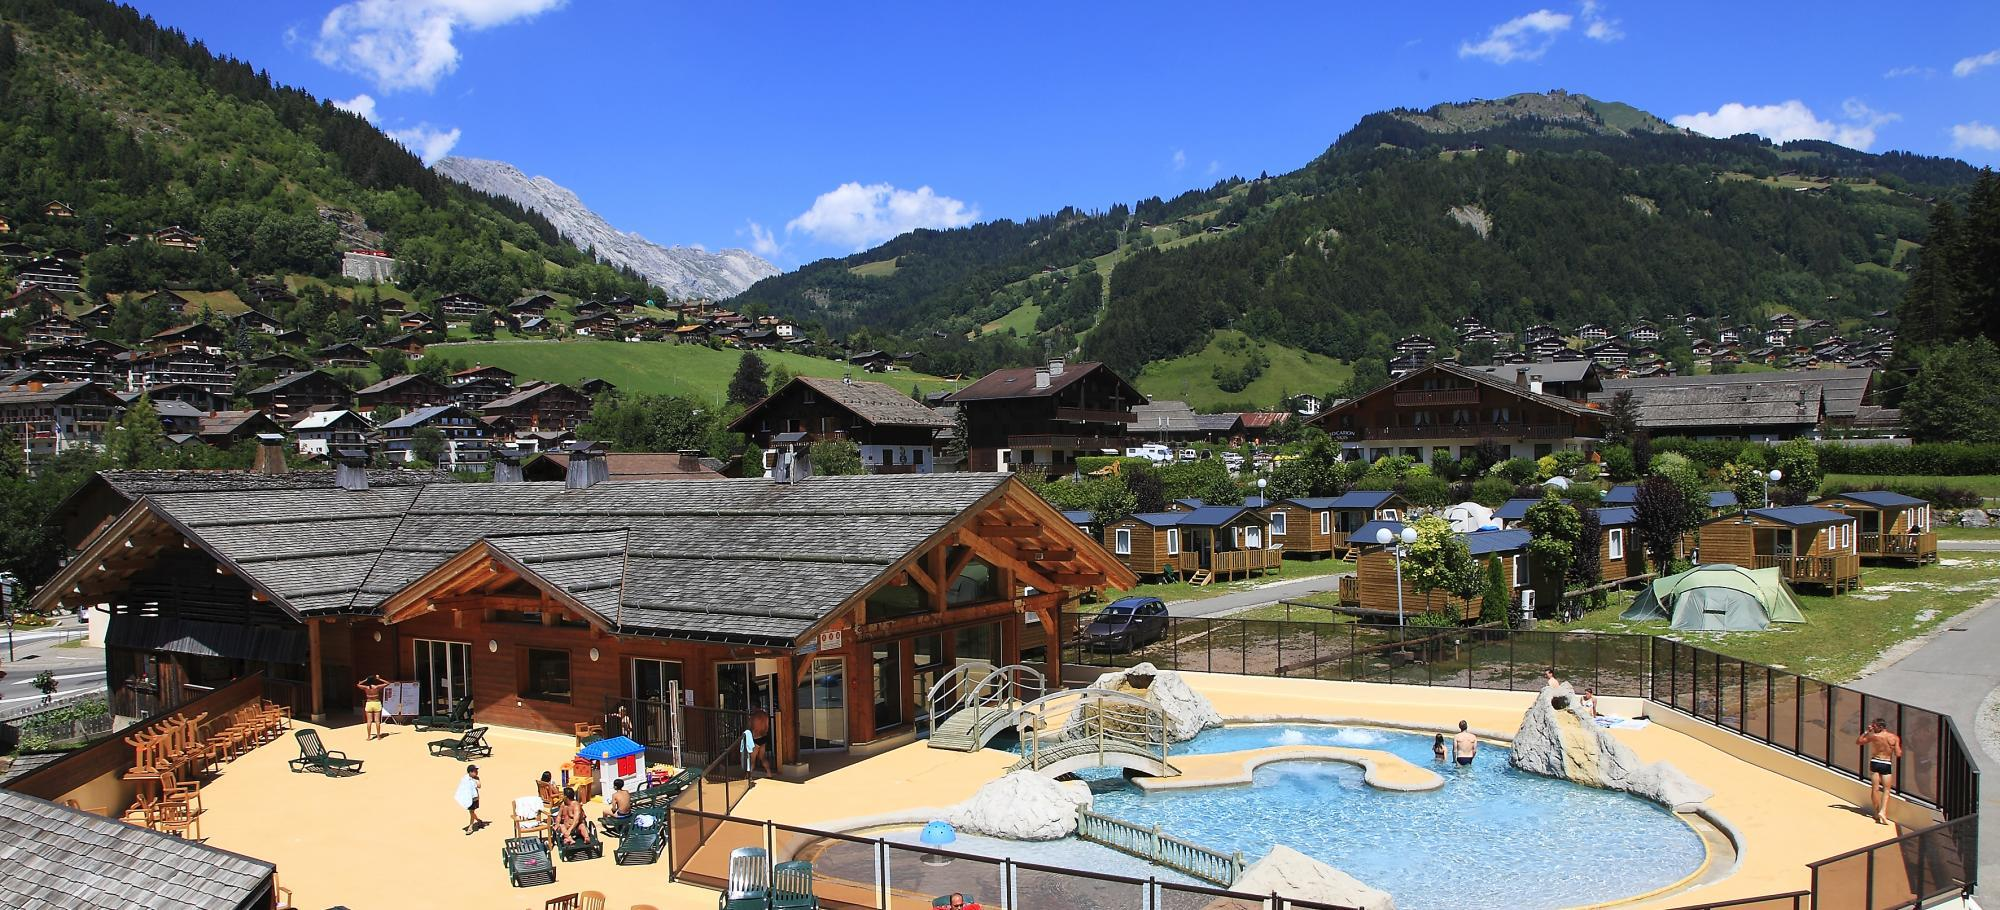 Establishment Camping L'Escale - Le Grand Bornand